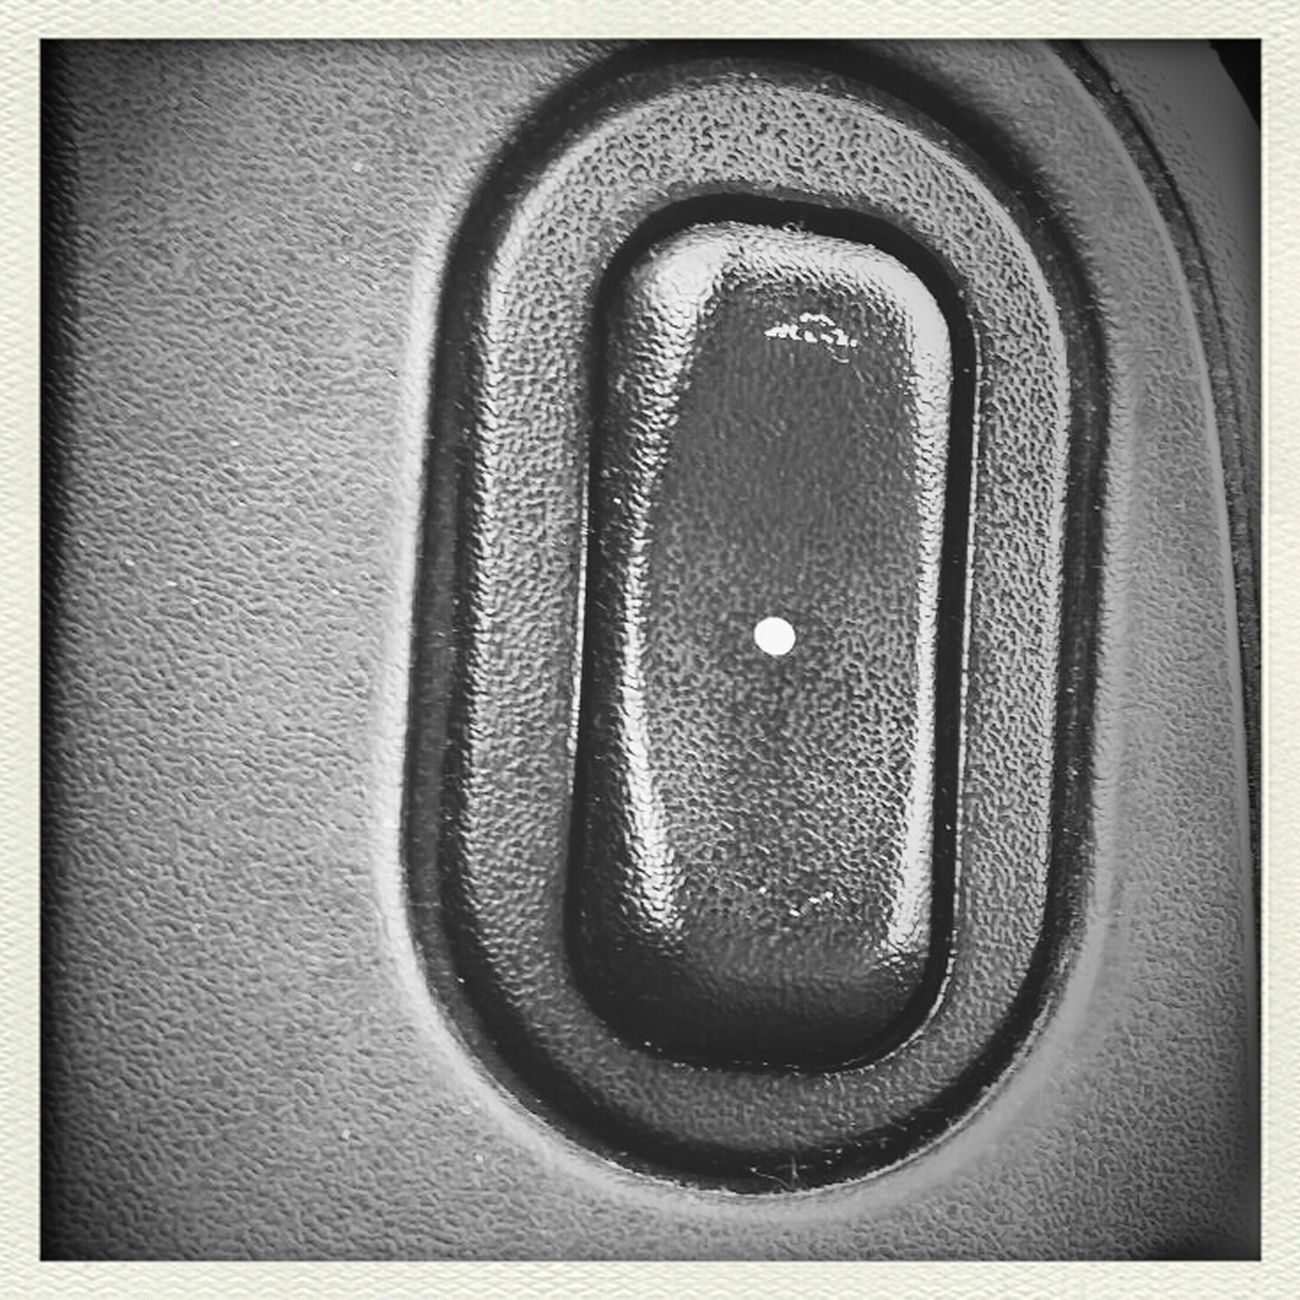 Just a plain old car electric window switch Somethingdifferent